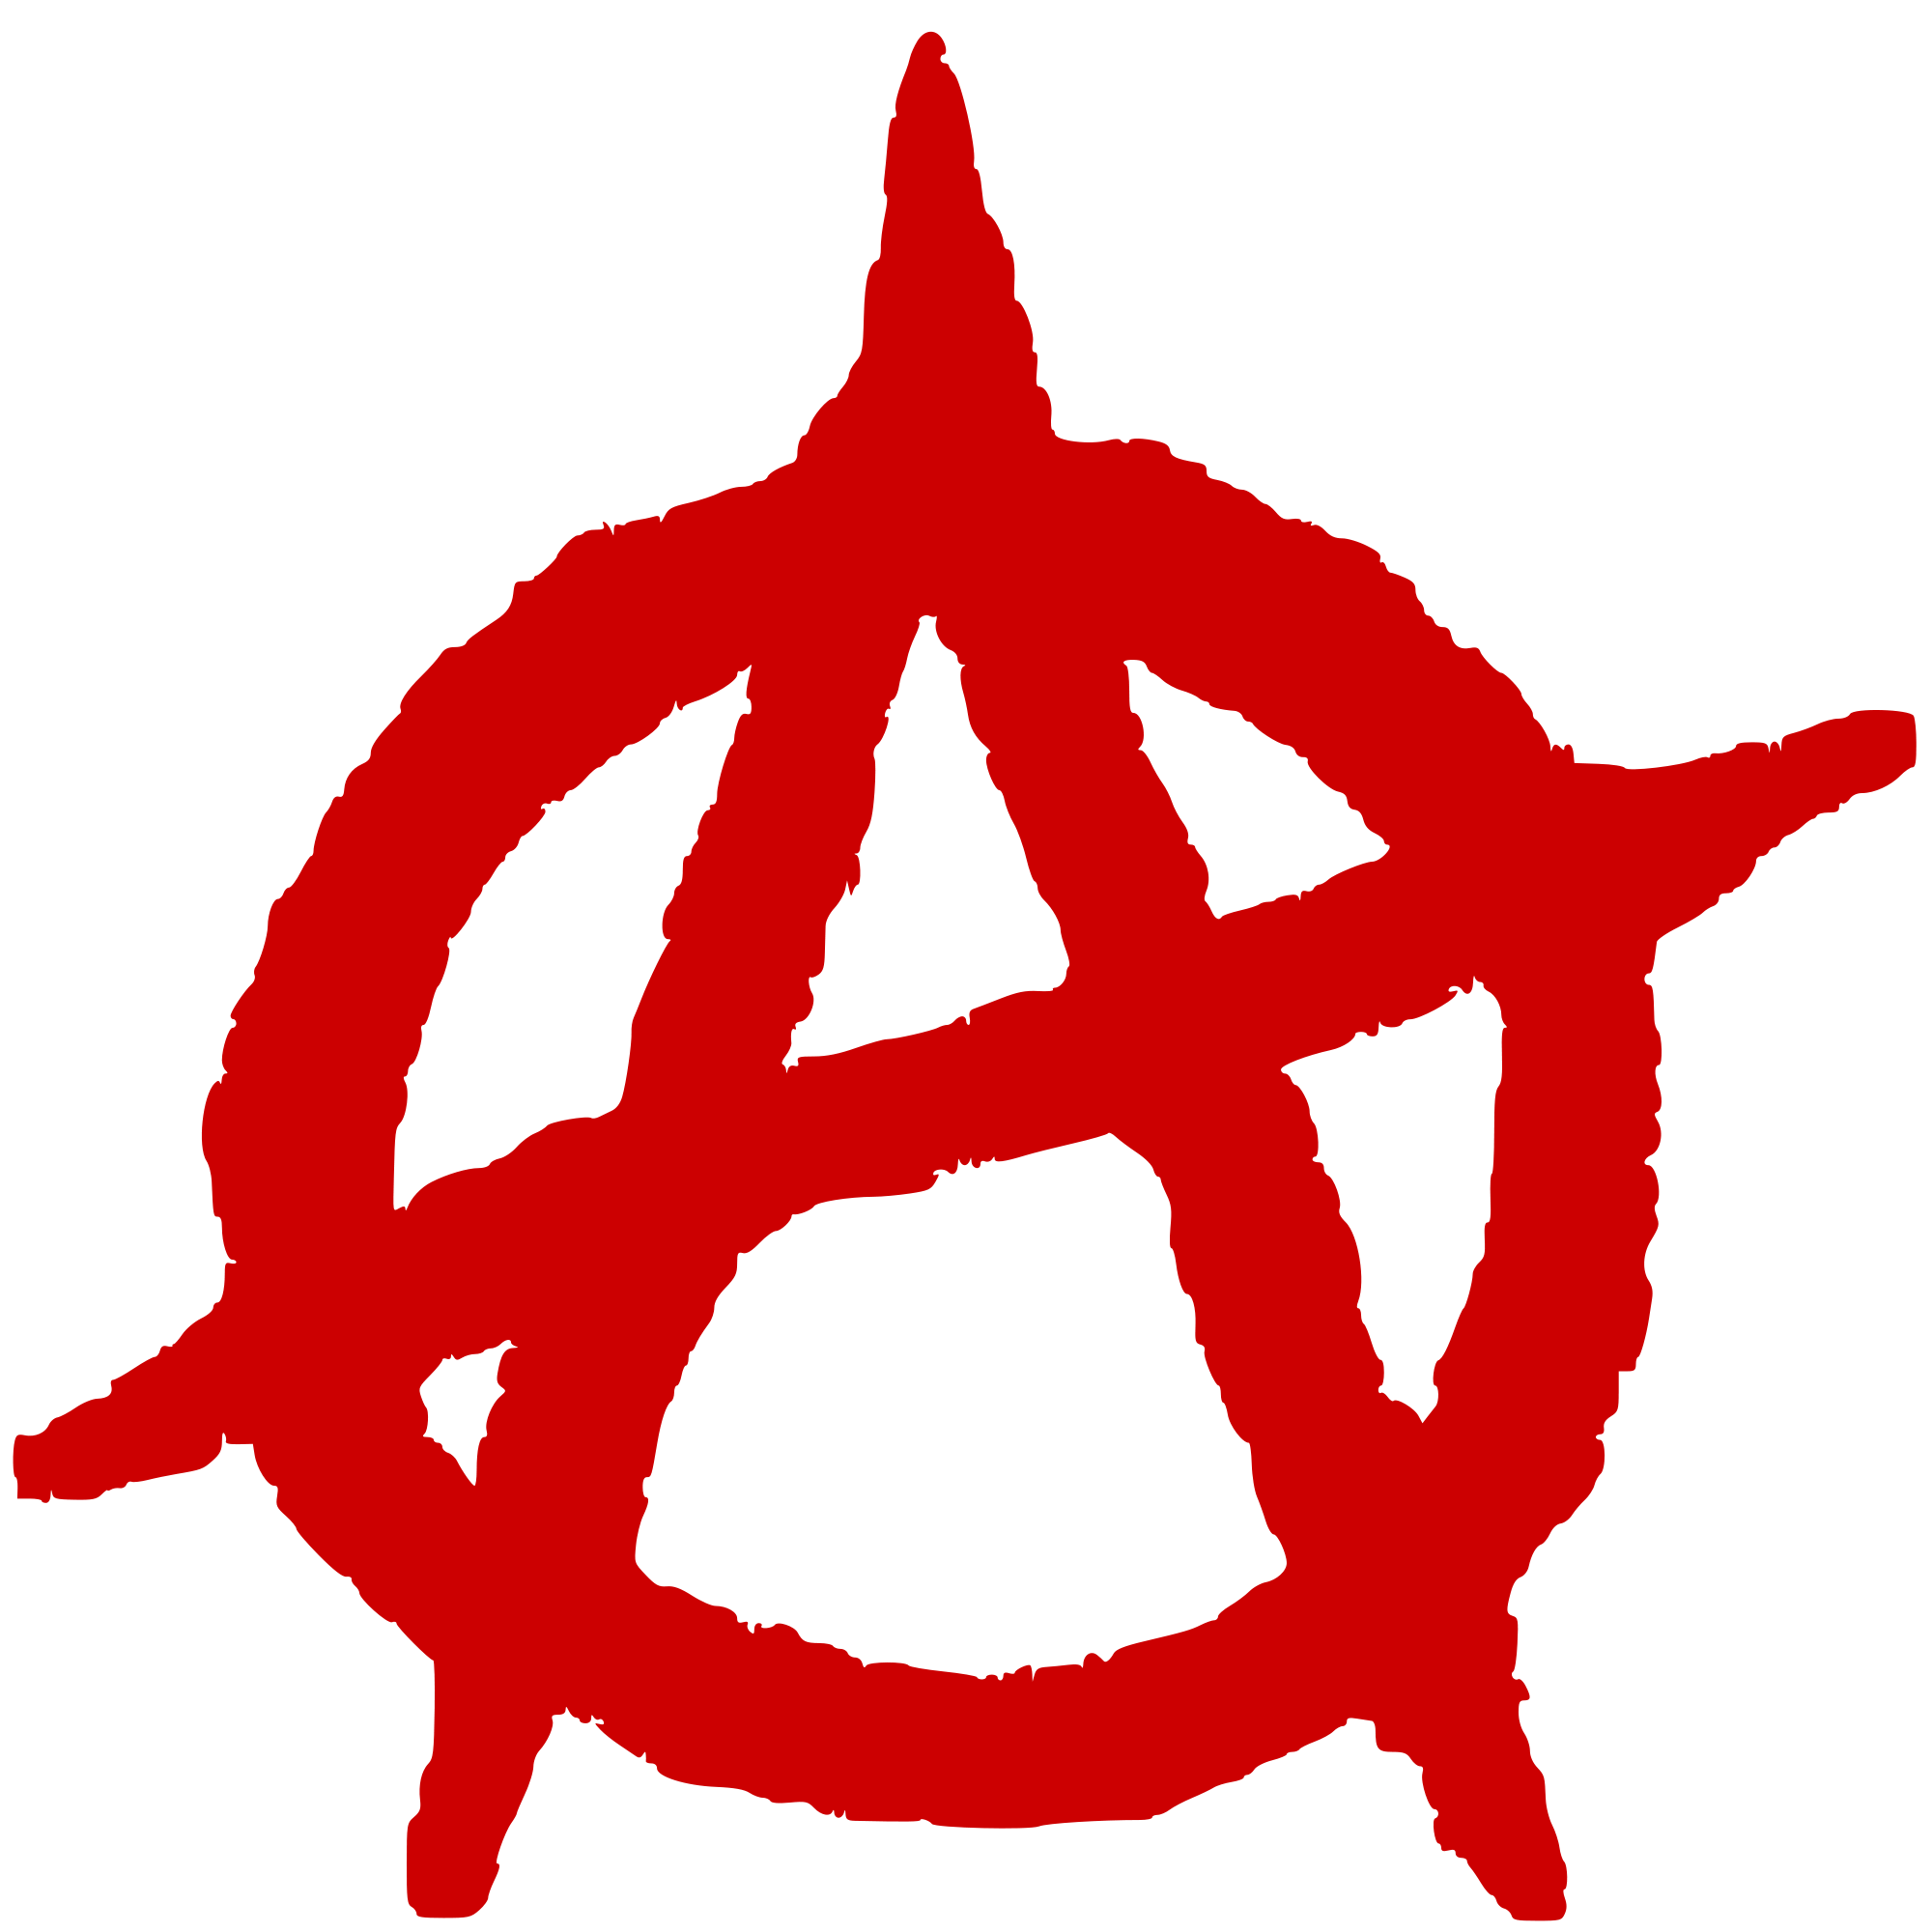 Logo Anarchy Us PNG - 33268